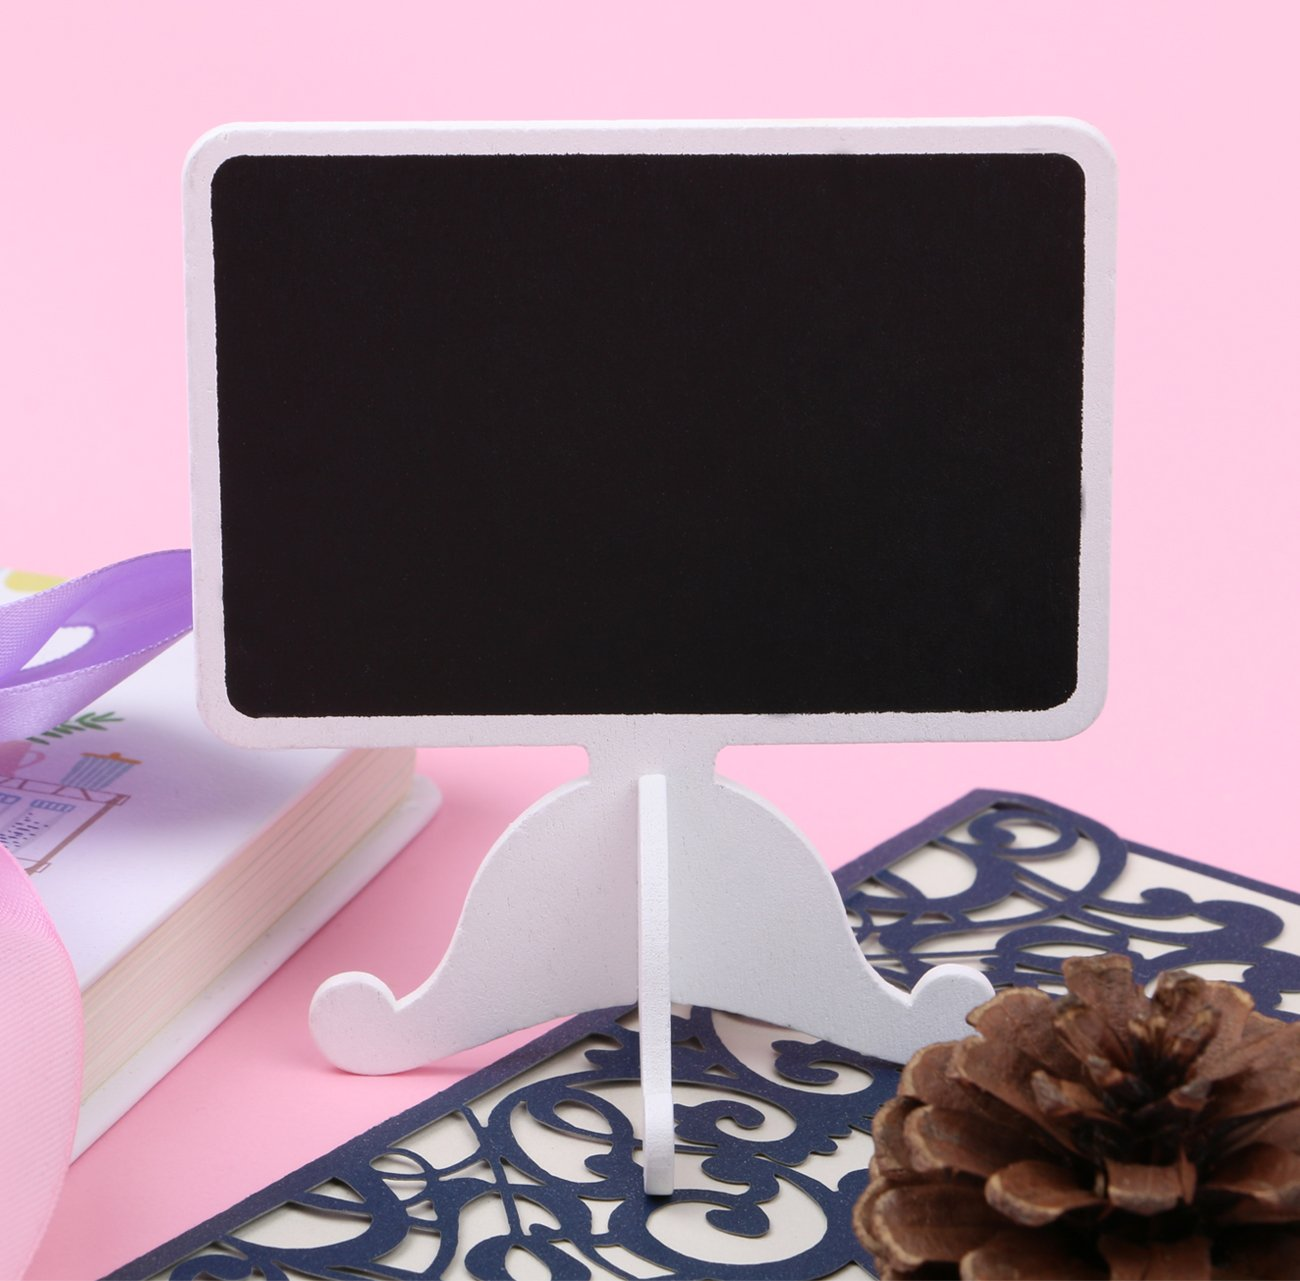 Dedoot Mini Rectangle Chalkboards Signs Stand, Pack of 20 Wood Small Chalkboard Place Cards with Easel Stand, Perfect for Daily Home Decoration, Weddings, Party, Table Numbers, Food Signs - White by Dedoot (Image #3)